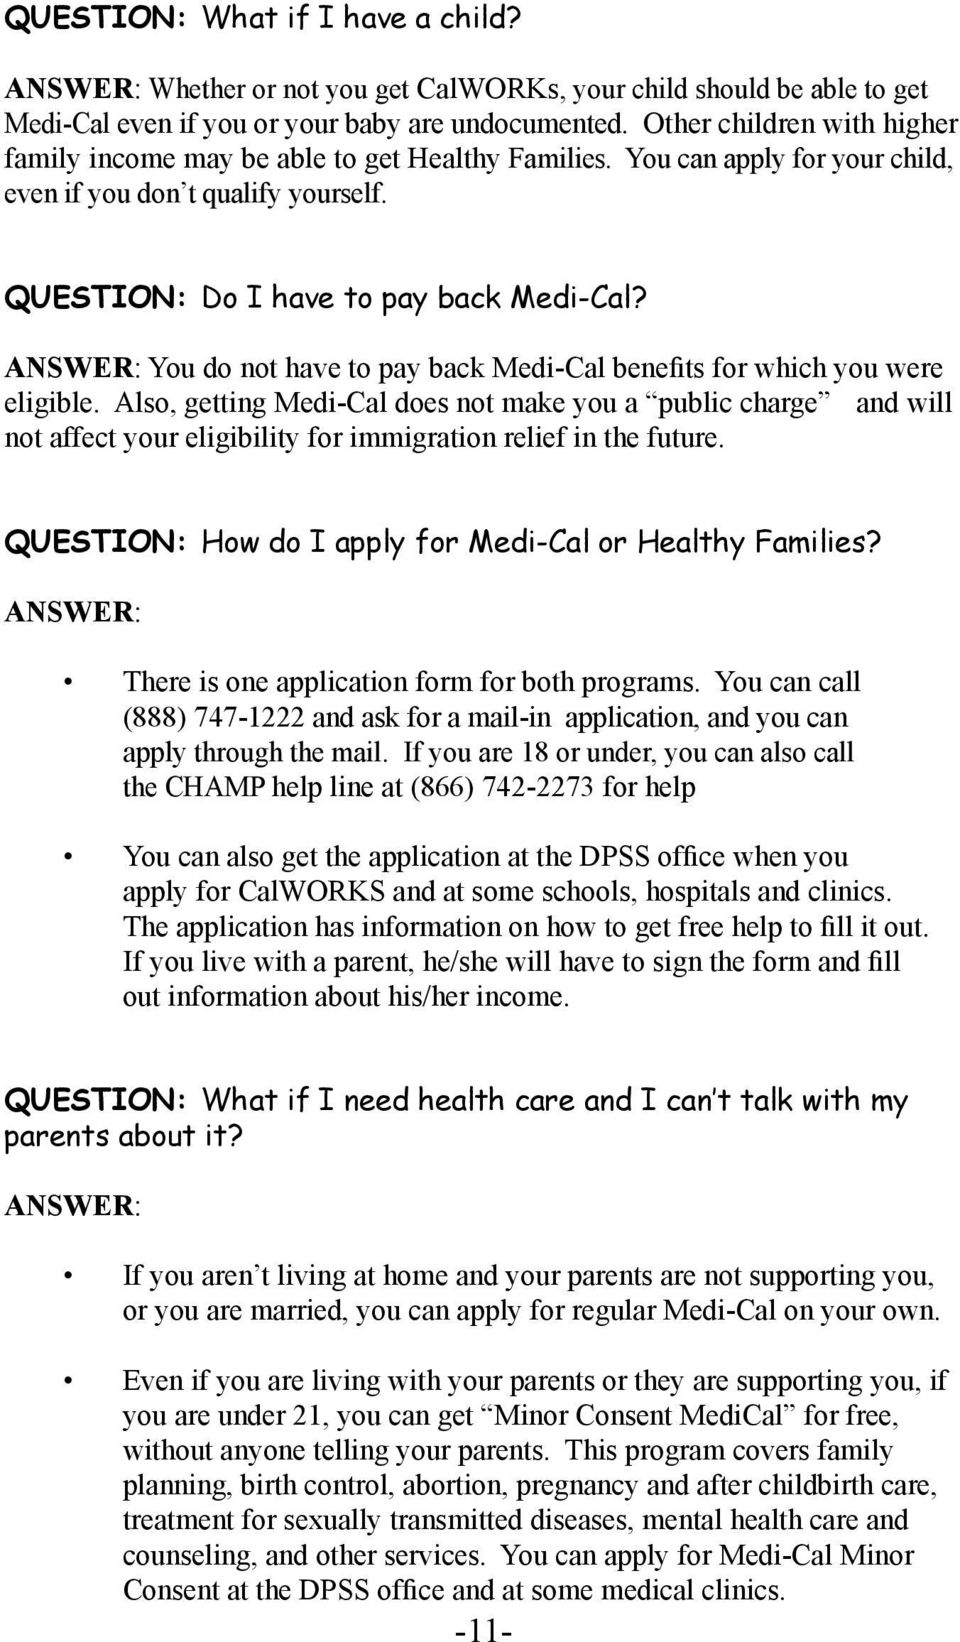 Communication on this topic: How to Apply for Medi Cal, how-to-apply-for-medi-cal/